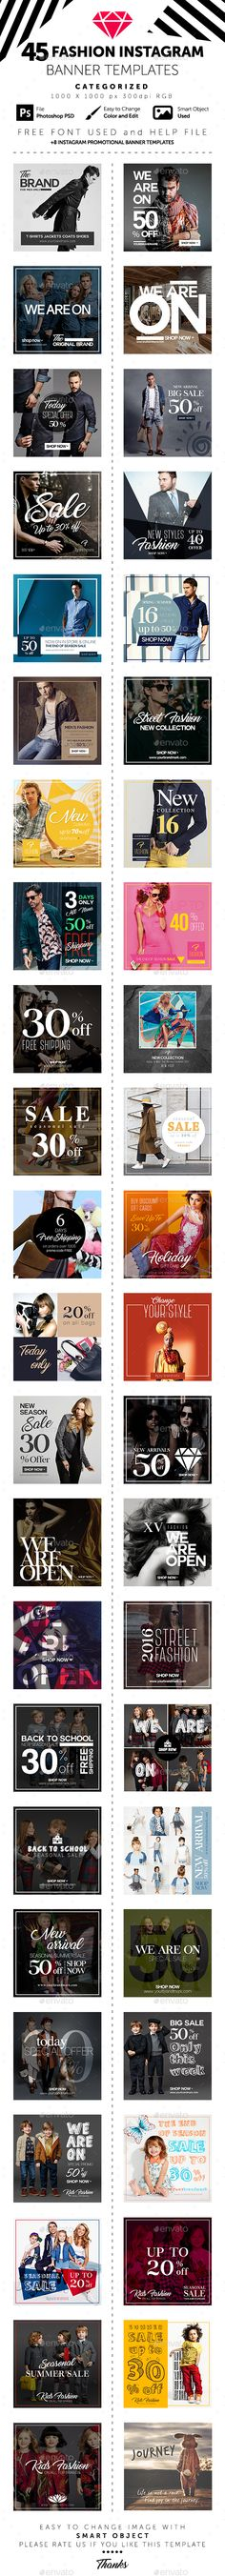 45 Fashion Instagram Banner Templates  • Only available here ➝ http://graphicriver.net/item/45-fashion-instagram-banner-templates/16334322?ref=pxcr